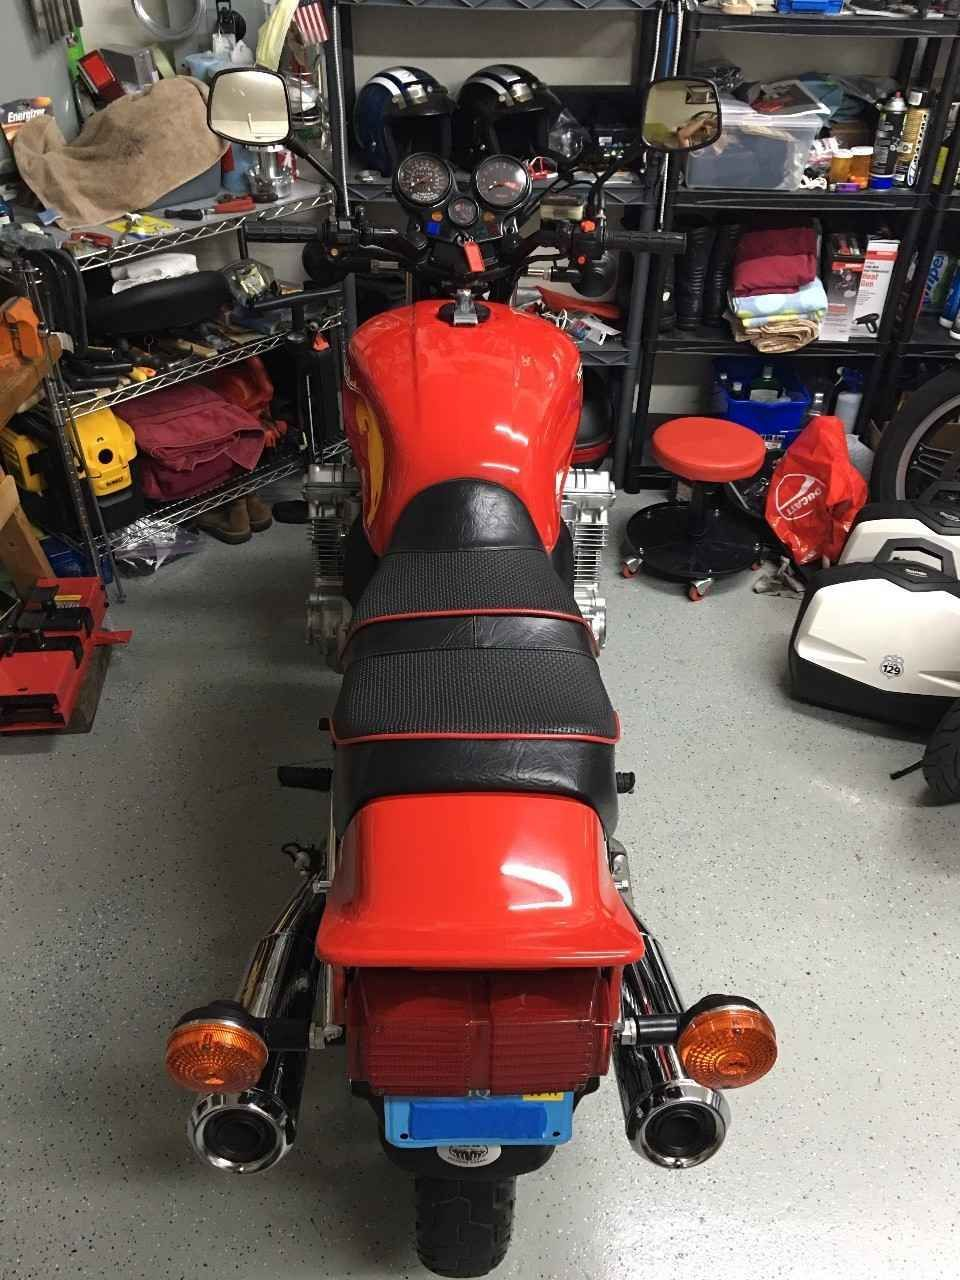 Used 1979 Honda CBX 1000 Motorcycles For Sale in Florida